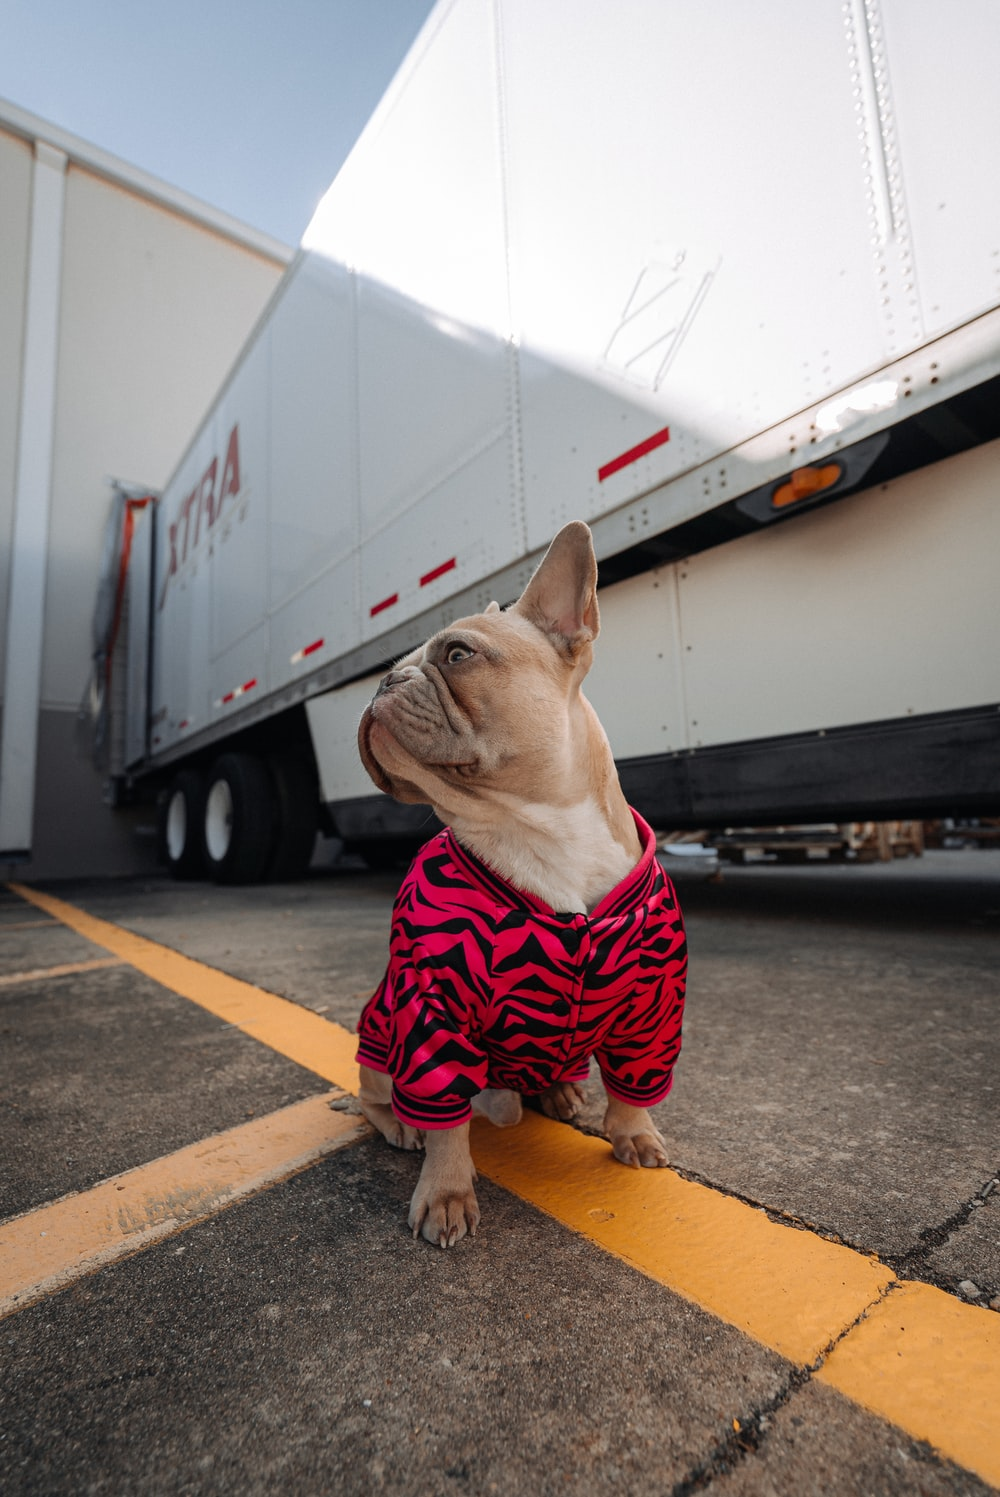 brown pug wearing red and white striped shirt and red and white plaid pants